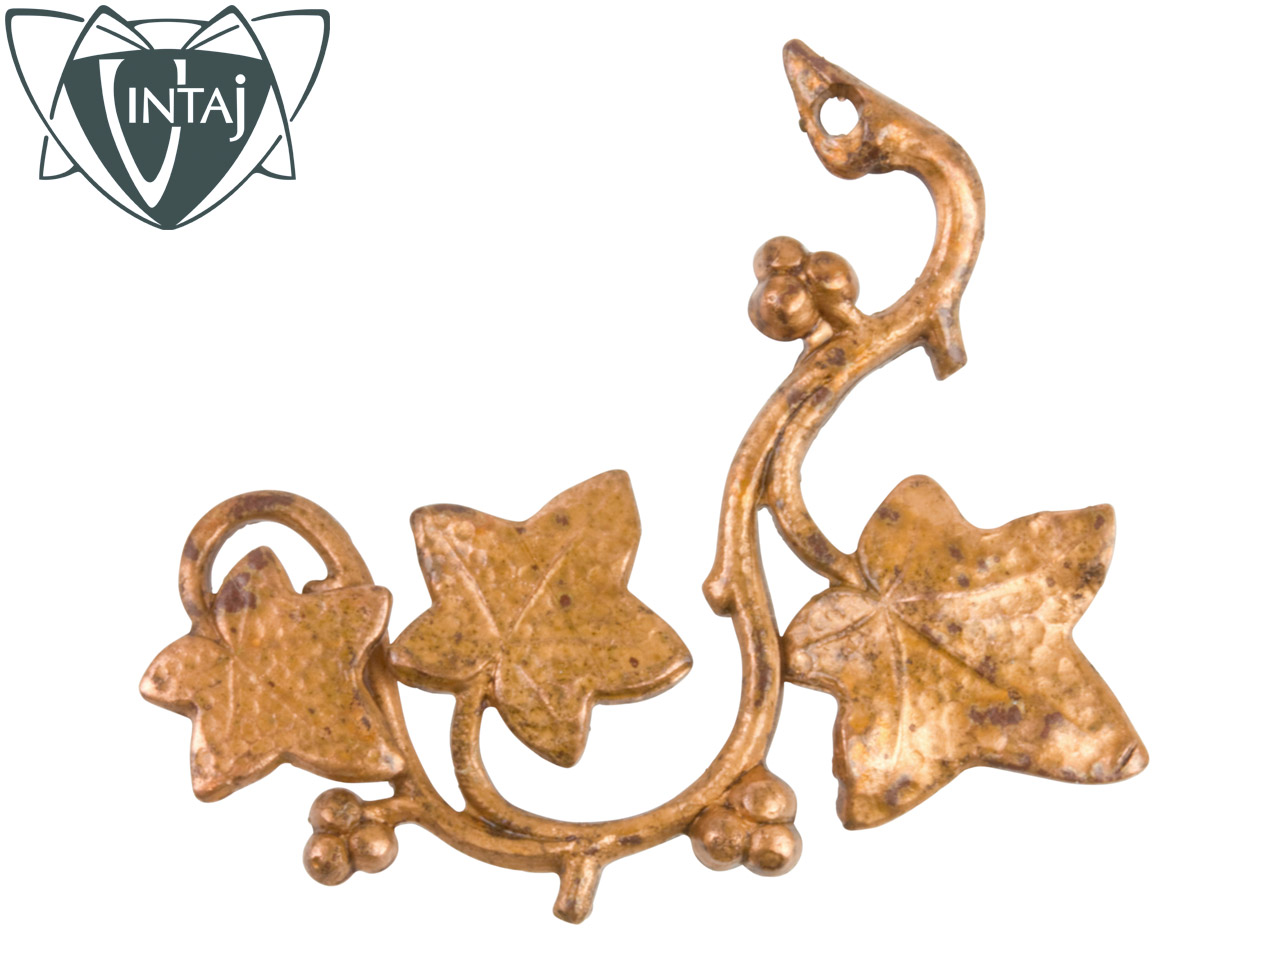 Vintaj Artisan Copper Craftsman Vine 41x25mm Pack of 1